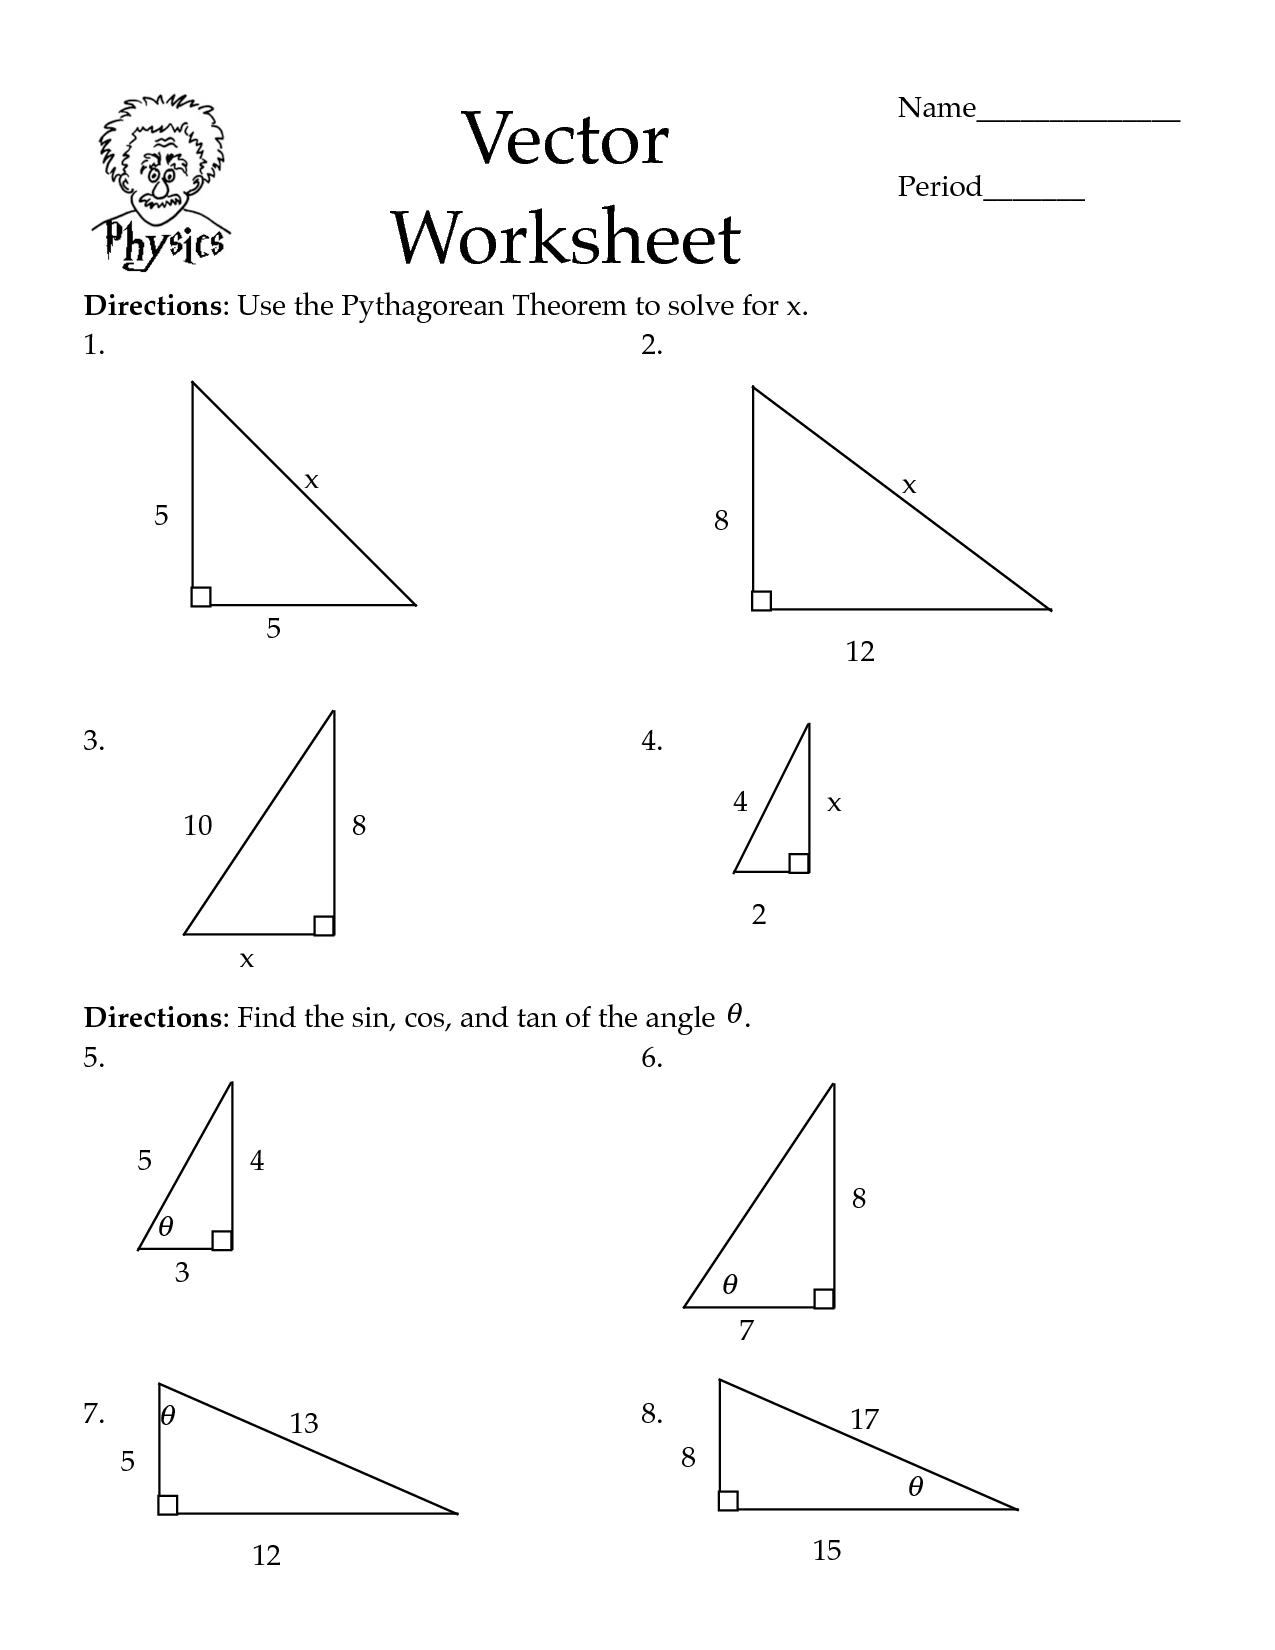 Worksheets Geometry Worksheets Pdf pythagorean theorem worksheets cos law worksheet pdf math pdf